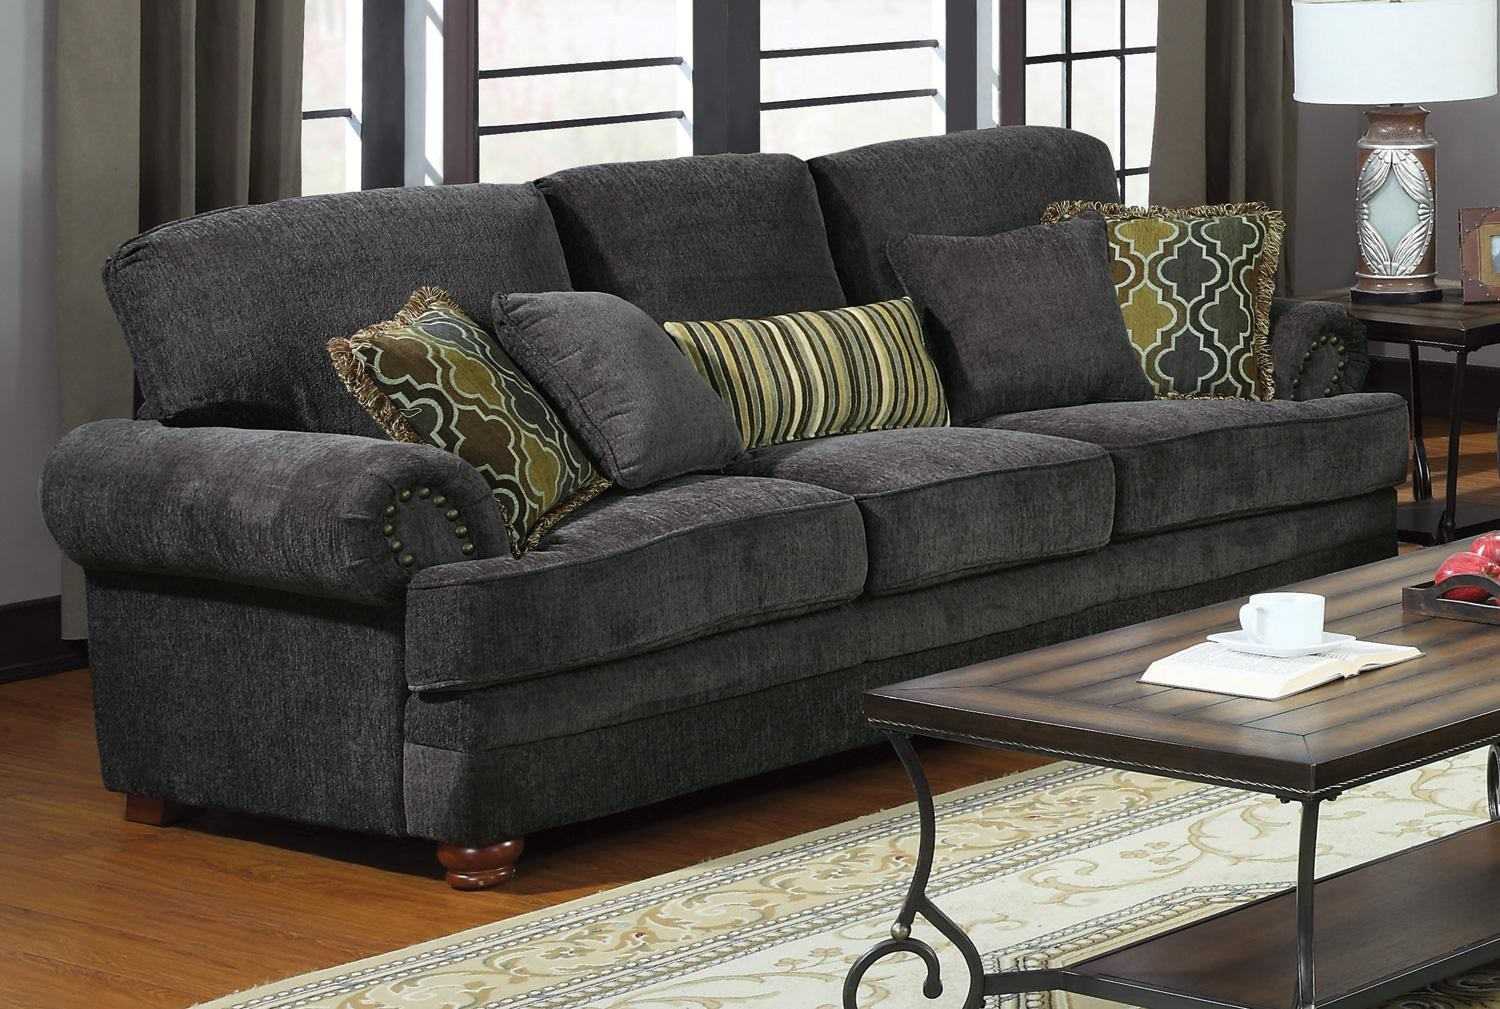 Sofa Set Grau Colton Grey Living Room Set From Coaster 504401